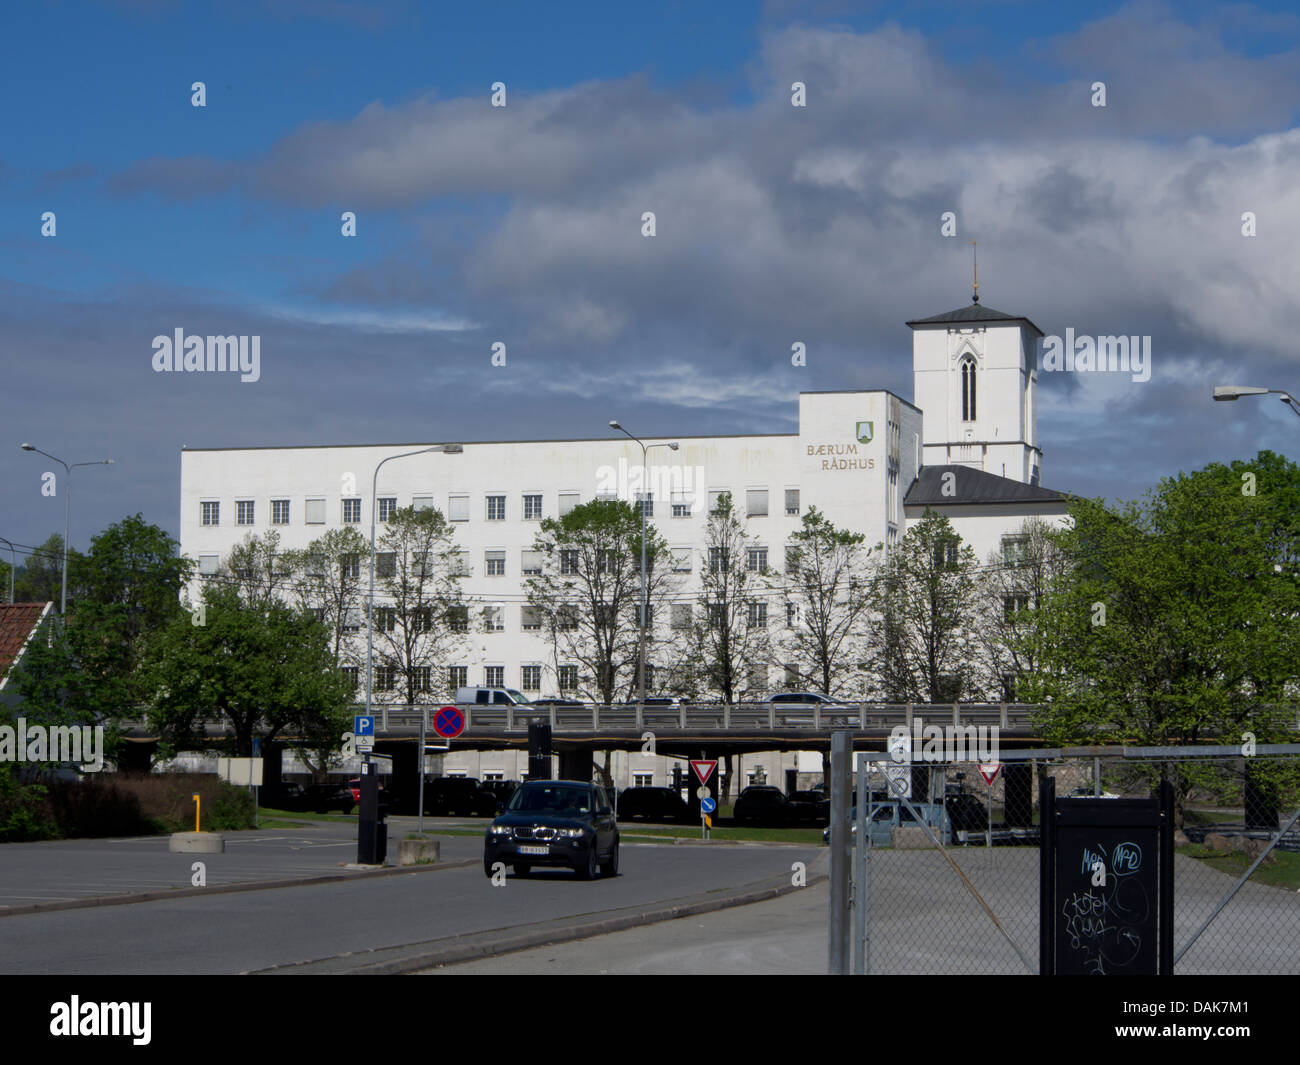 Sandvika city hall local government seat, Bærum Norway, with major motorway cutting across - Stock Image